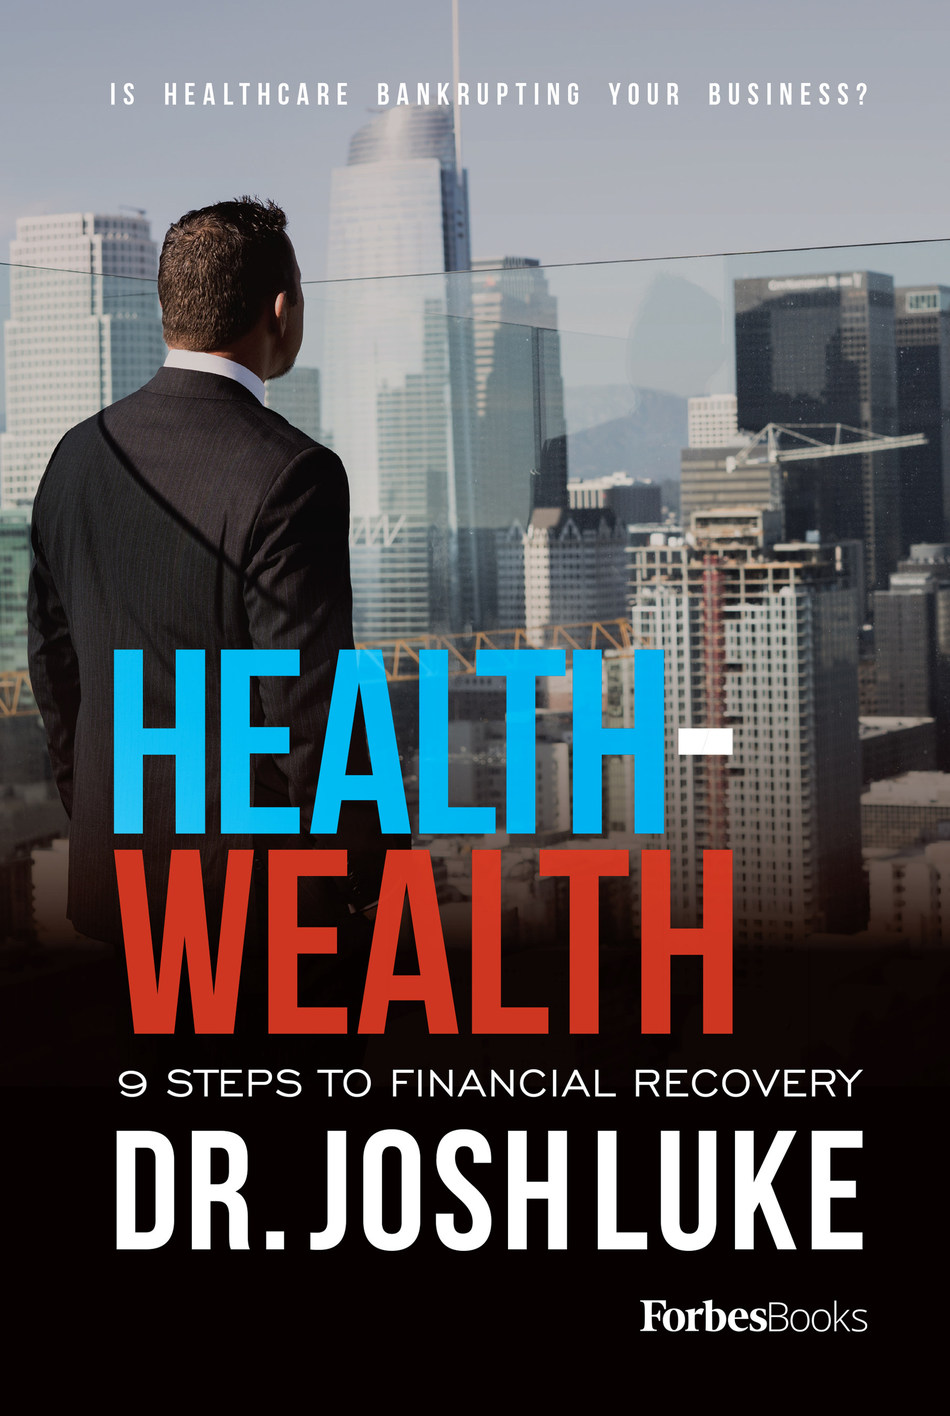 Health-Wealth from Forbes Books, by Amazon #1 Best Seller Dr. Josh Luke is available on Amazon on Thursday, January 18, 2018. Dr. Luke, a former hospital CEO and faculty member at the University of Southern California is a public speaker and well known as America's Healthcare Affordability Authority and teaches businesses how to reduce healthcare spending while enhancing offerings.